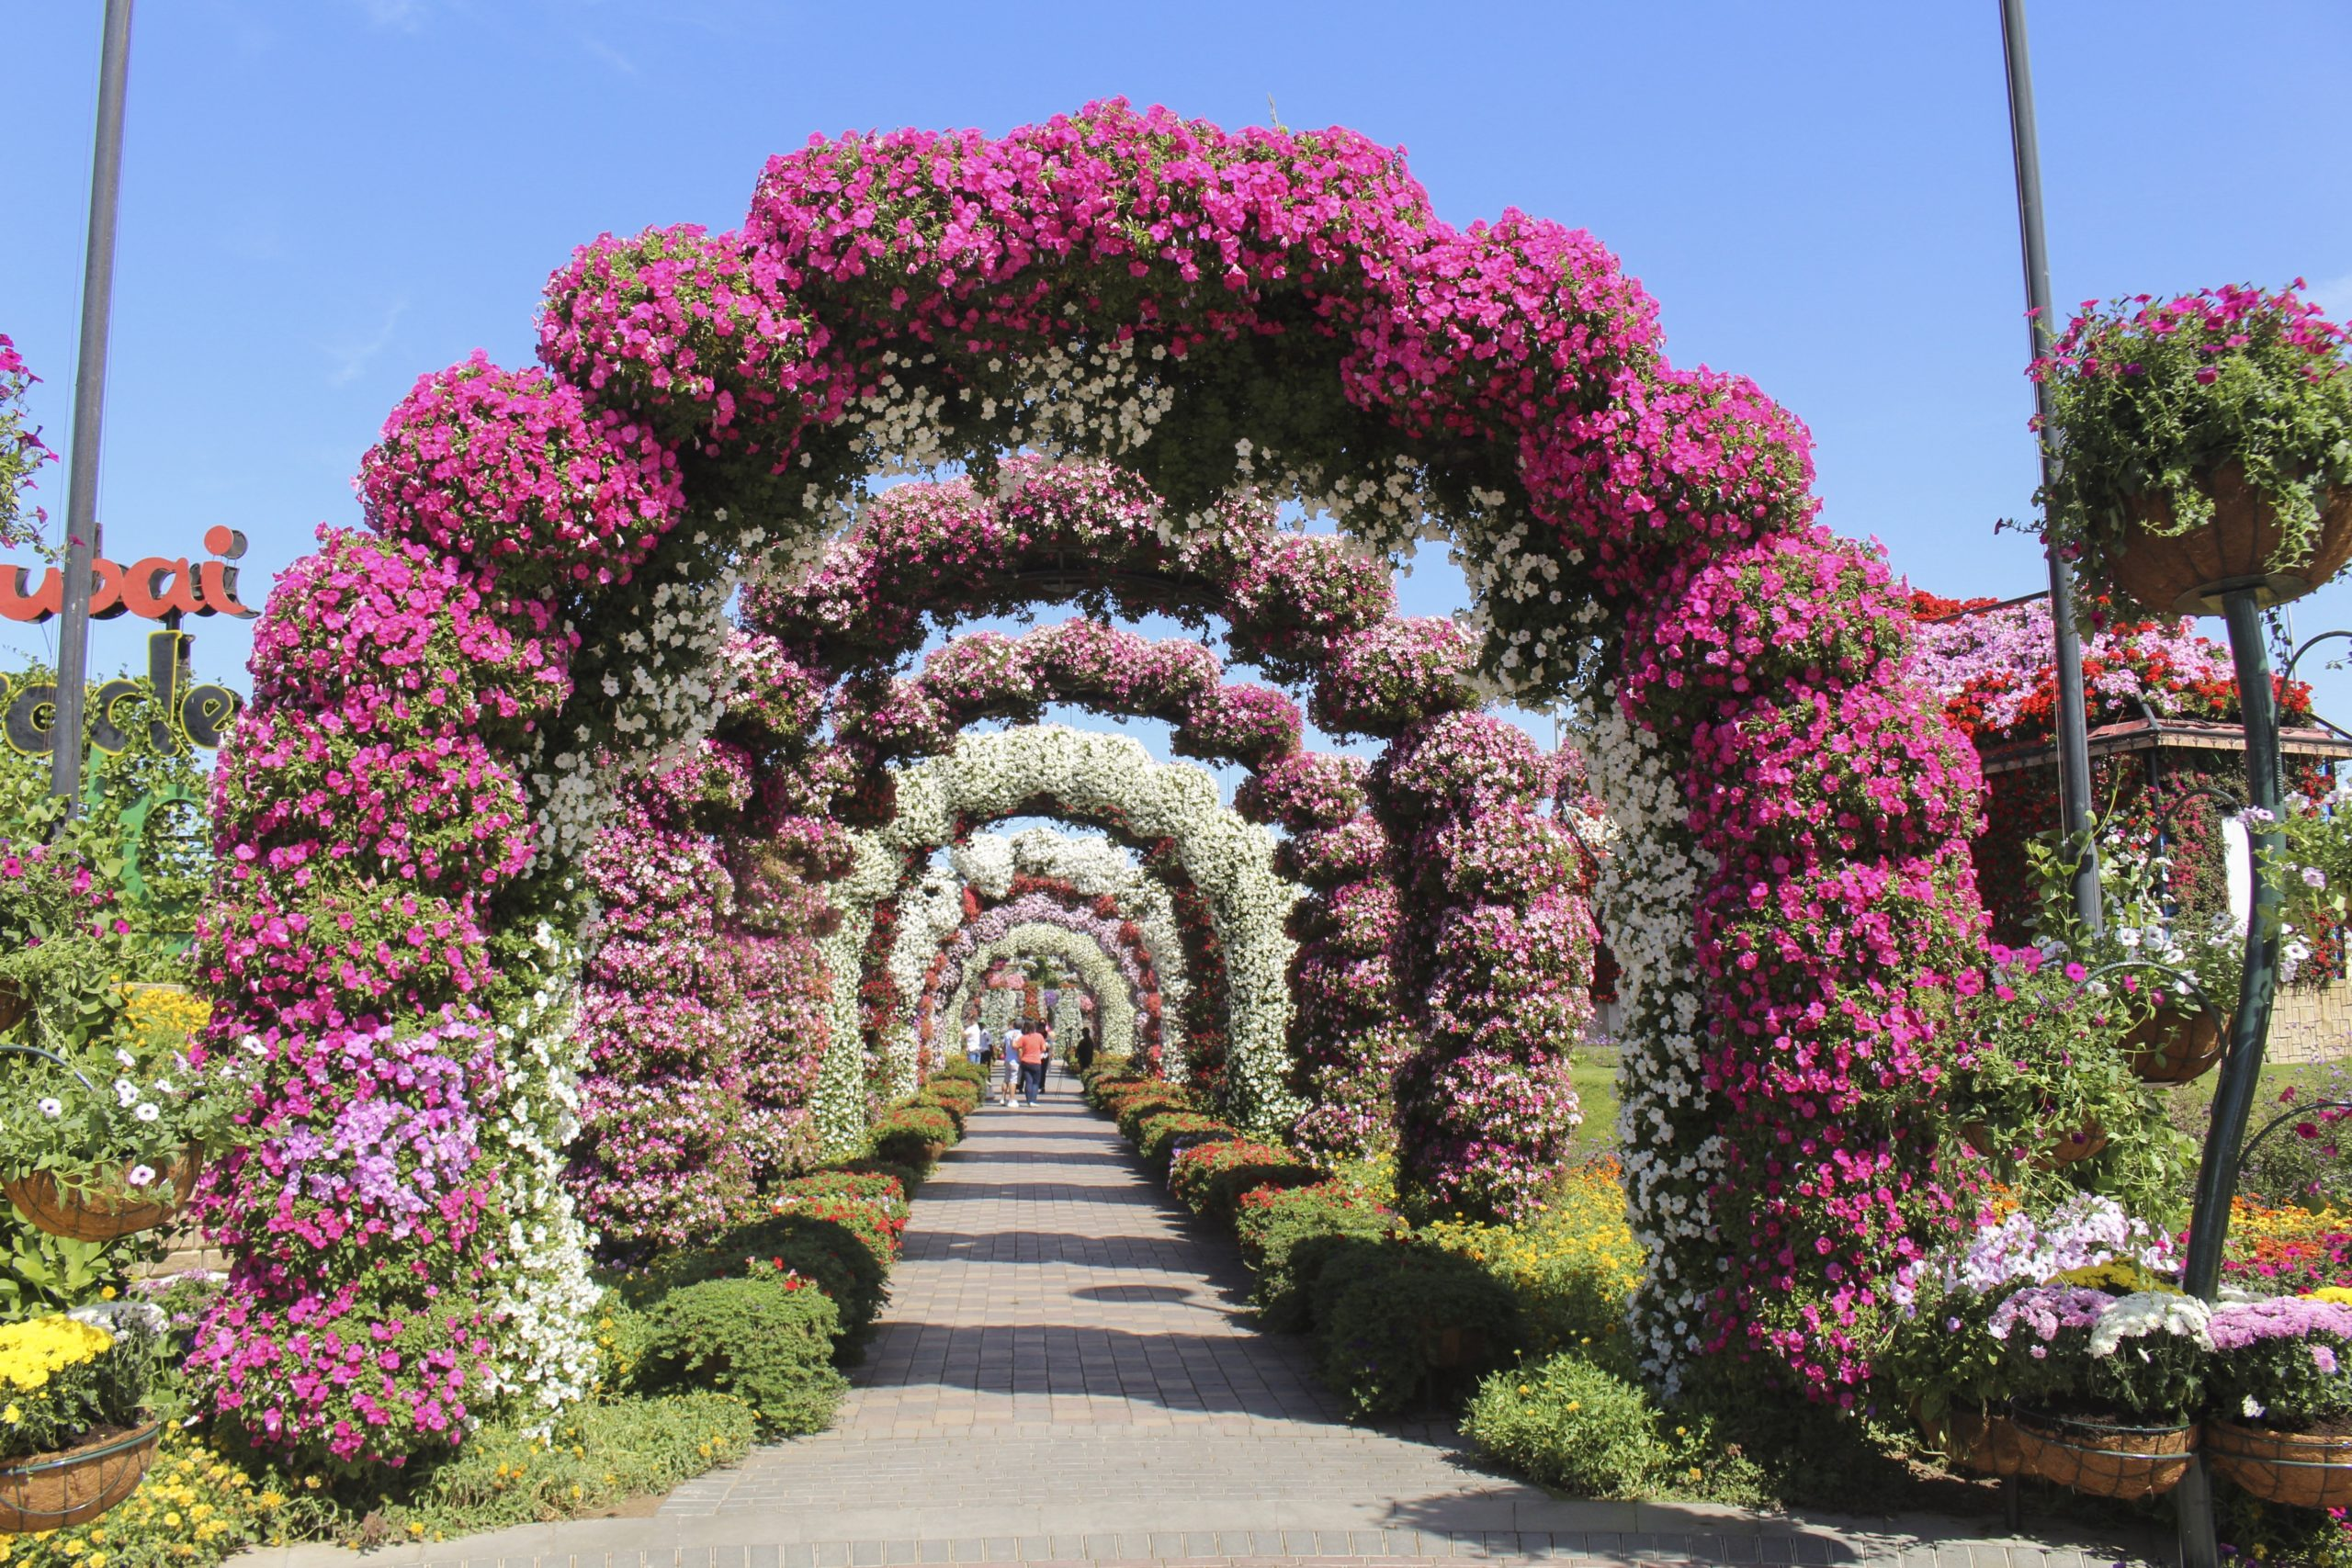 The Miracle Garden (Dubai, United Arab Emirates) from Chris Woods's